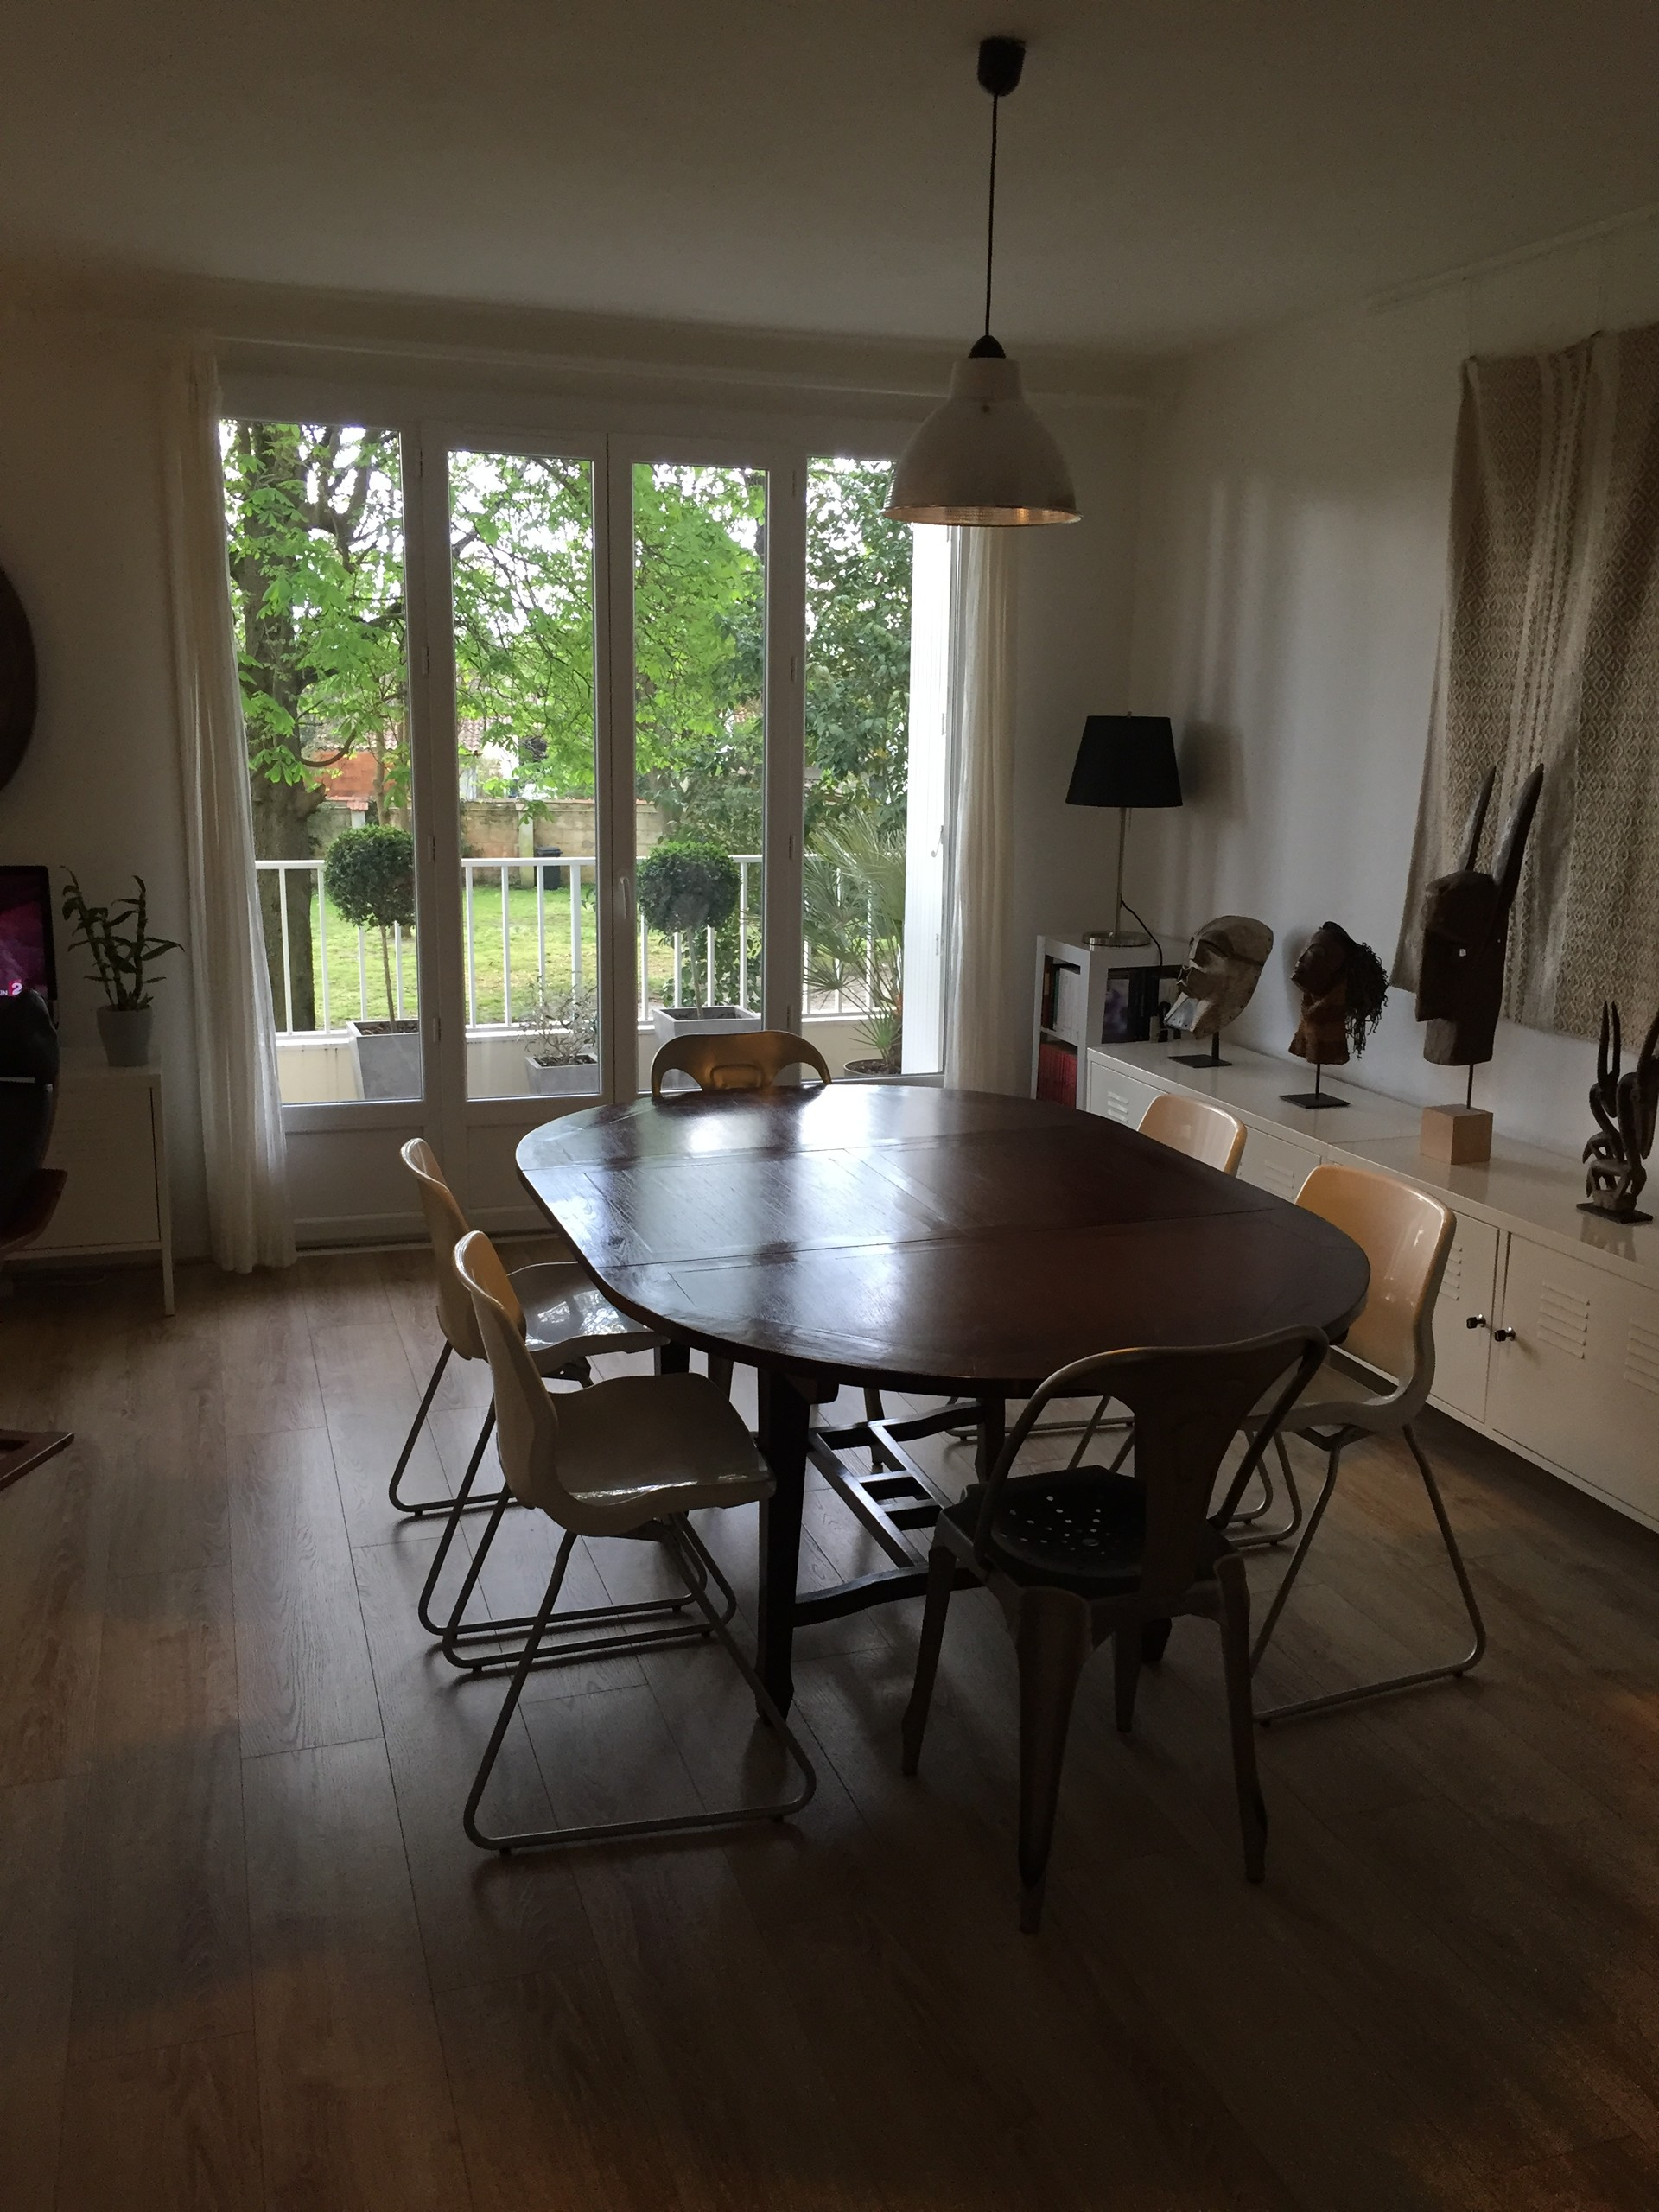 Appartement Colocation Bordeaux Collocation Bordeaux